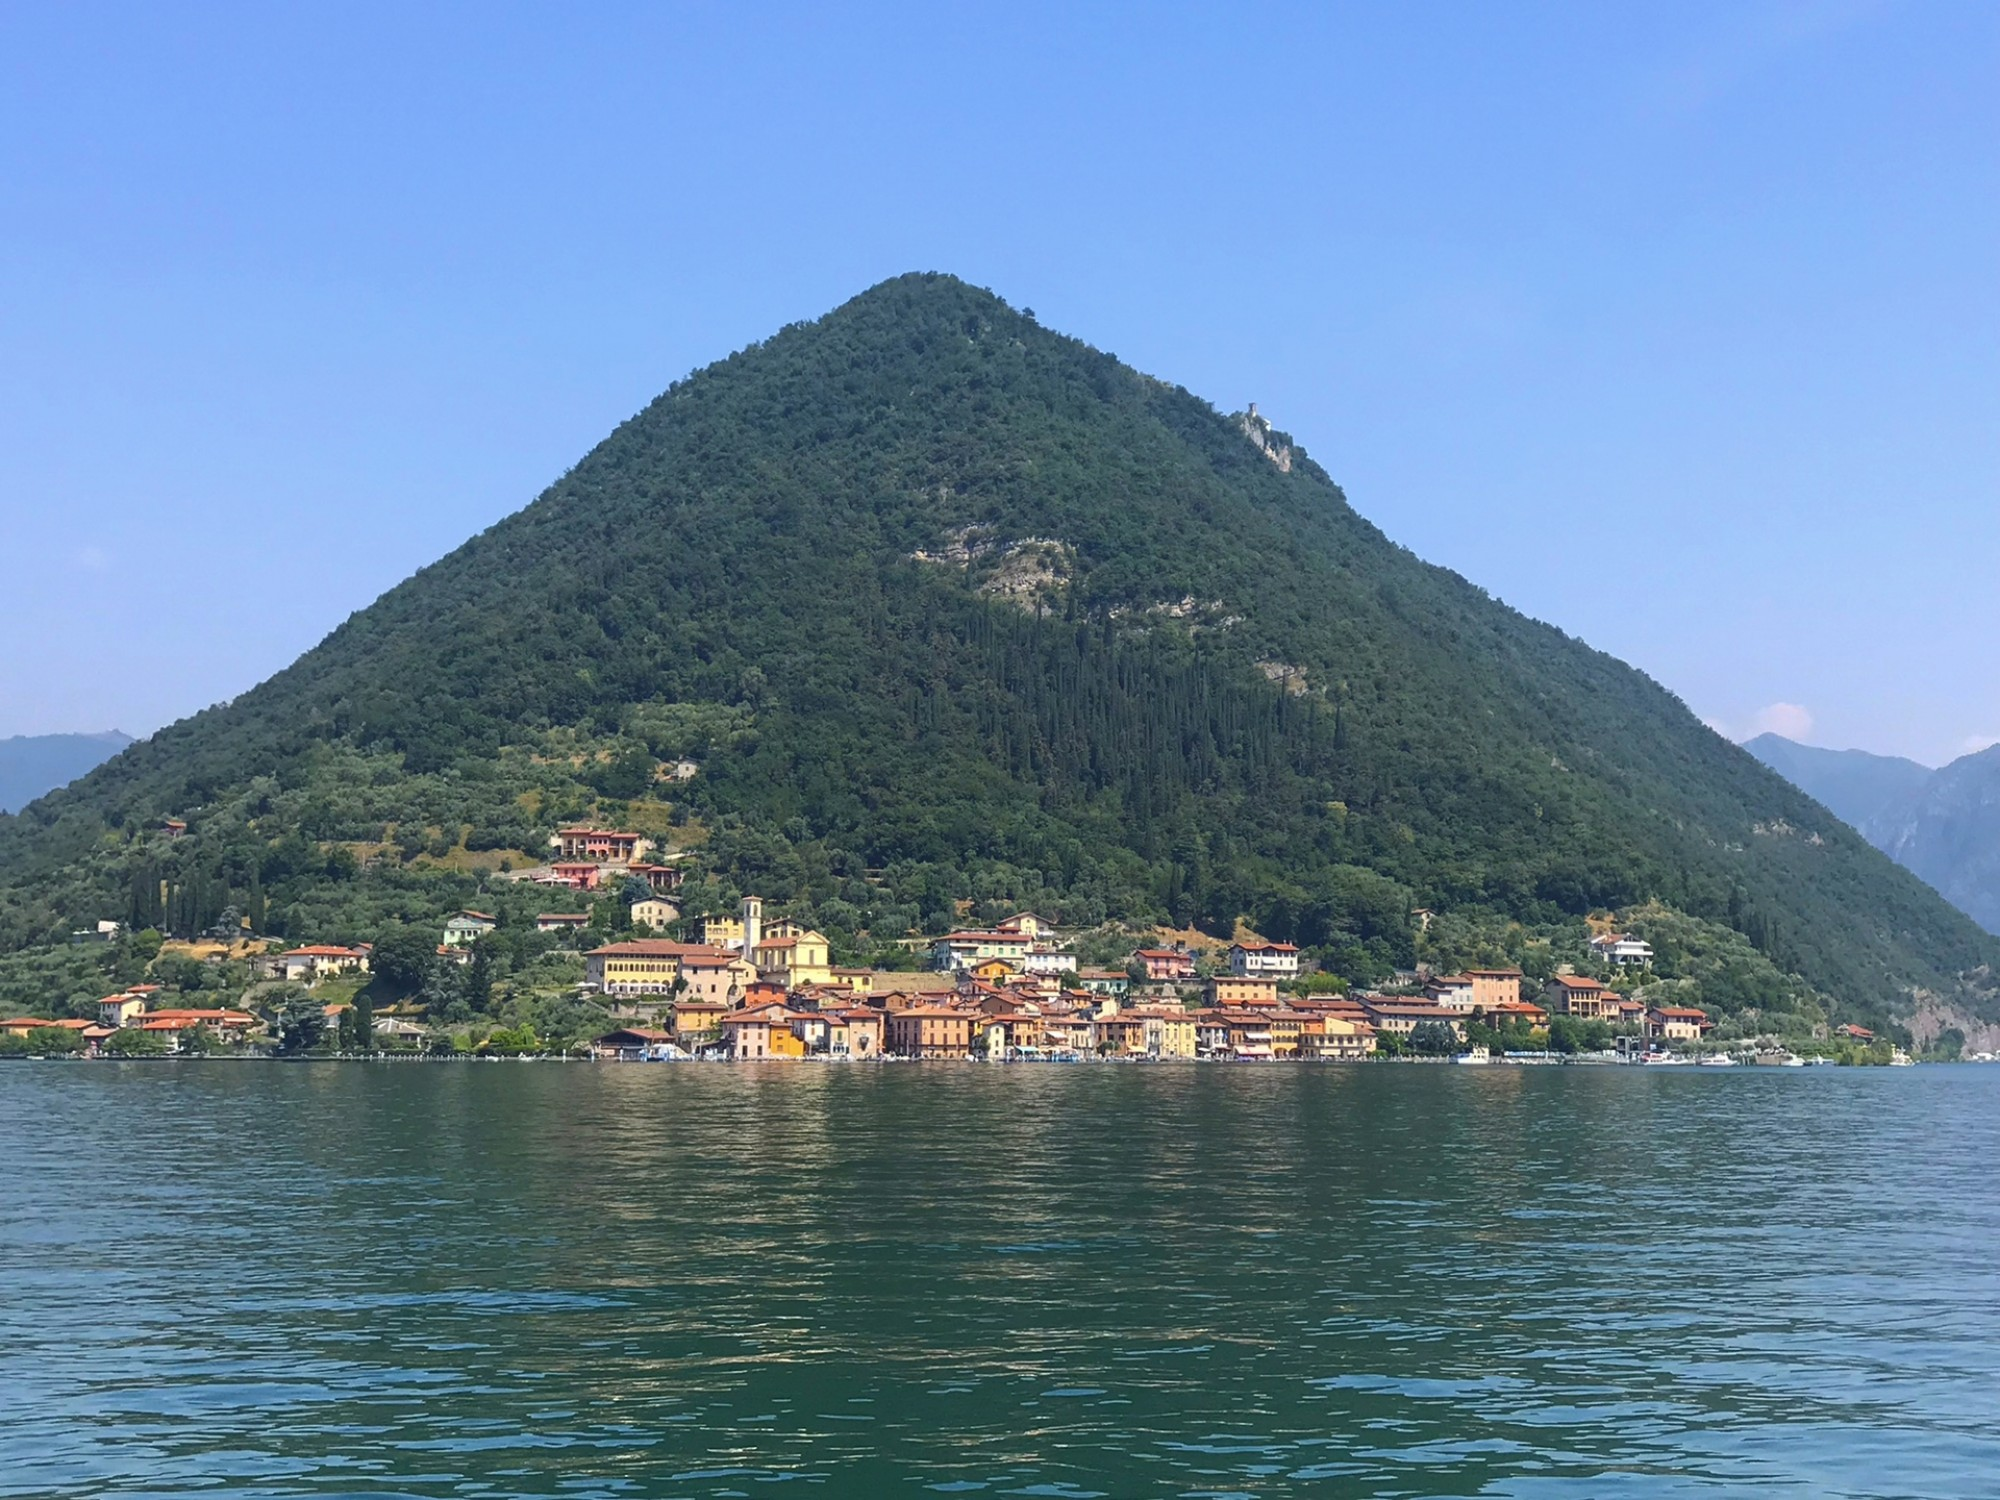 Monte isola from lake 2